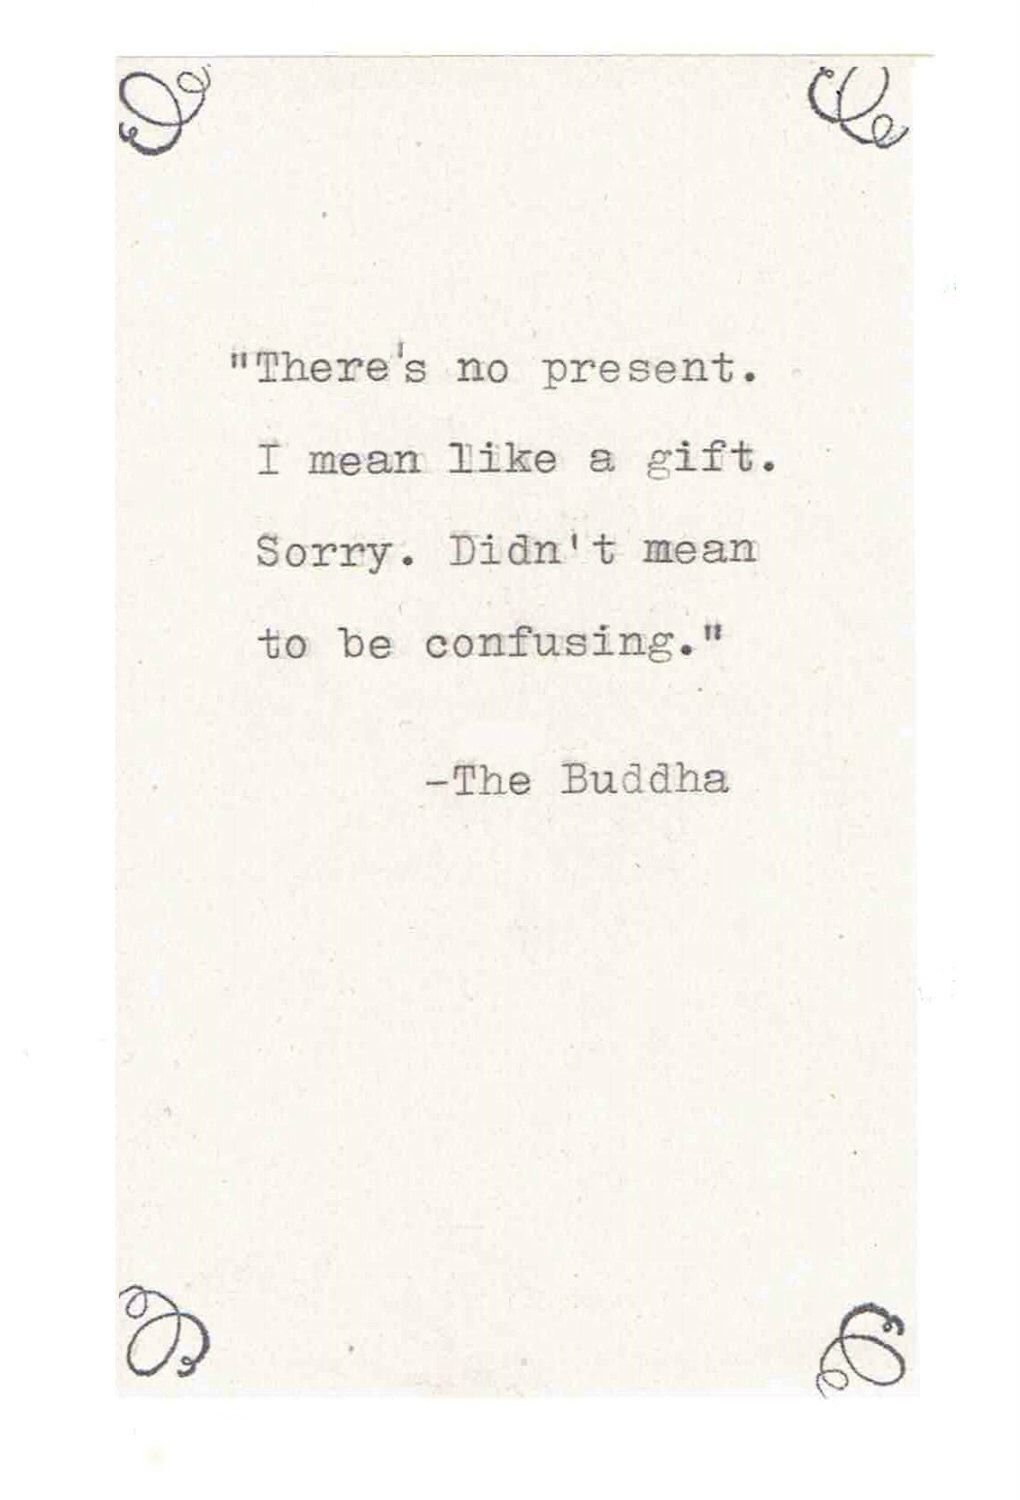 Buddha Misquote Birthday Card Funny Buddhist Humor Sarcastic Nerdy Hand Typed Quote Zen Gift Present Pun Vintage Men Women Funny Birthday Cards Typed Quotes Zen Quotes